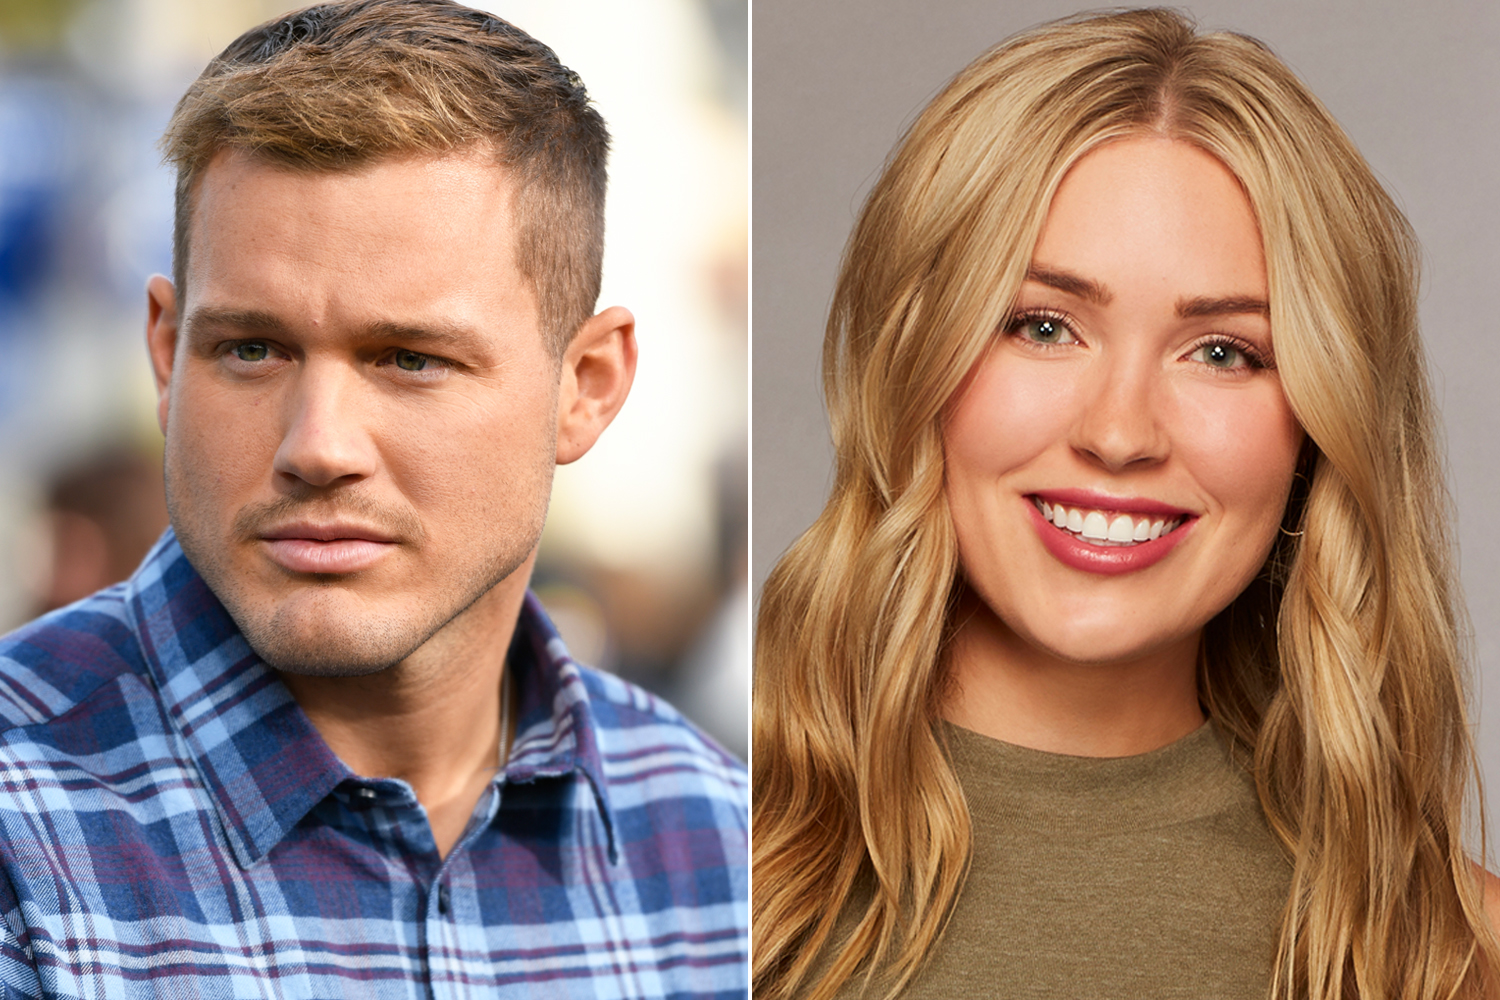 cassie-randolph-gets-restraining-order-against-her-ex-colton-underwood-after-allegedly-harassing-and-stalking-her